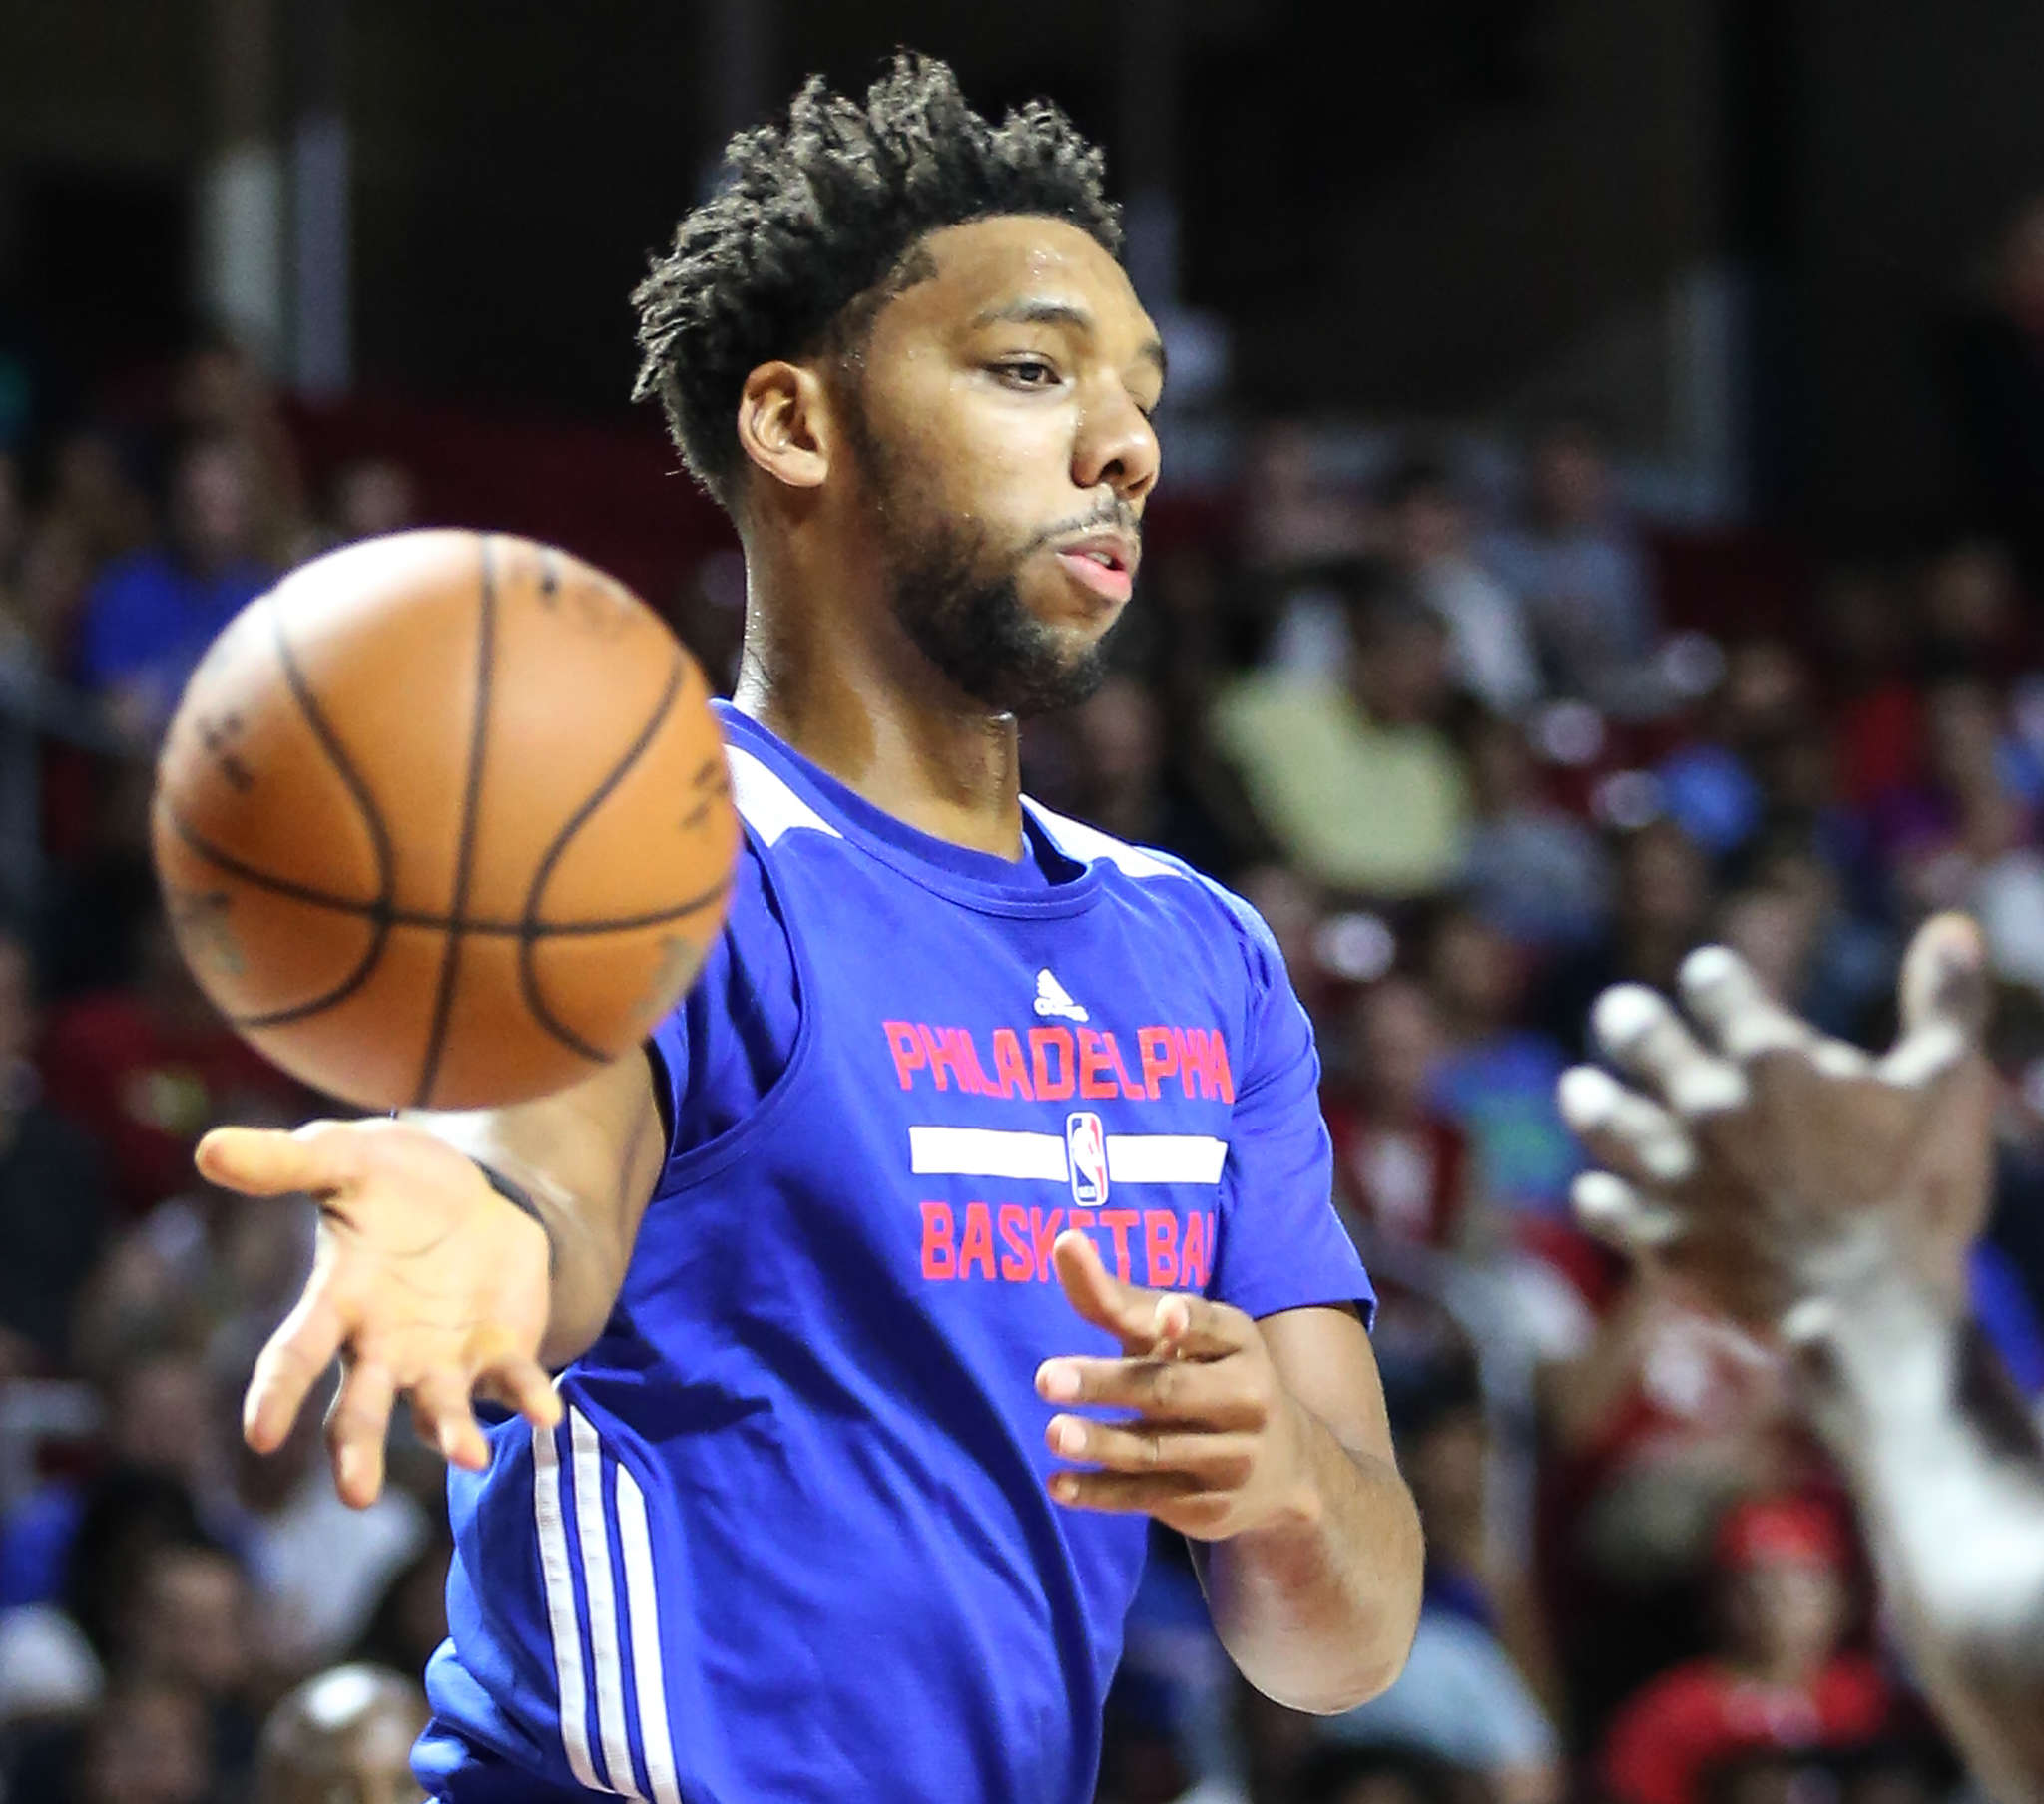 Jahlil Okafor has returned to action, but his minutes will be limited as he recovers from knee surgery. STEVEN M. FALK / Staff Photographer